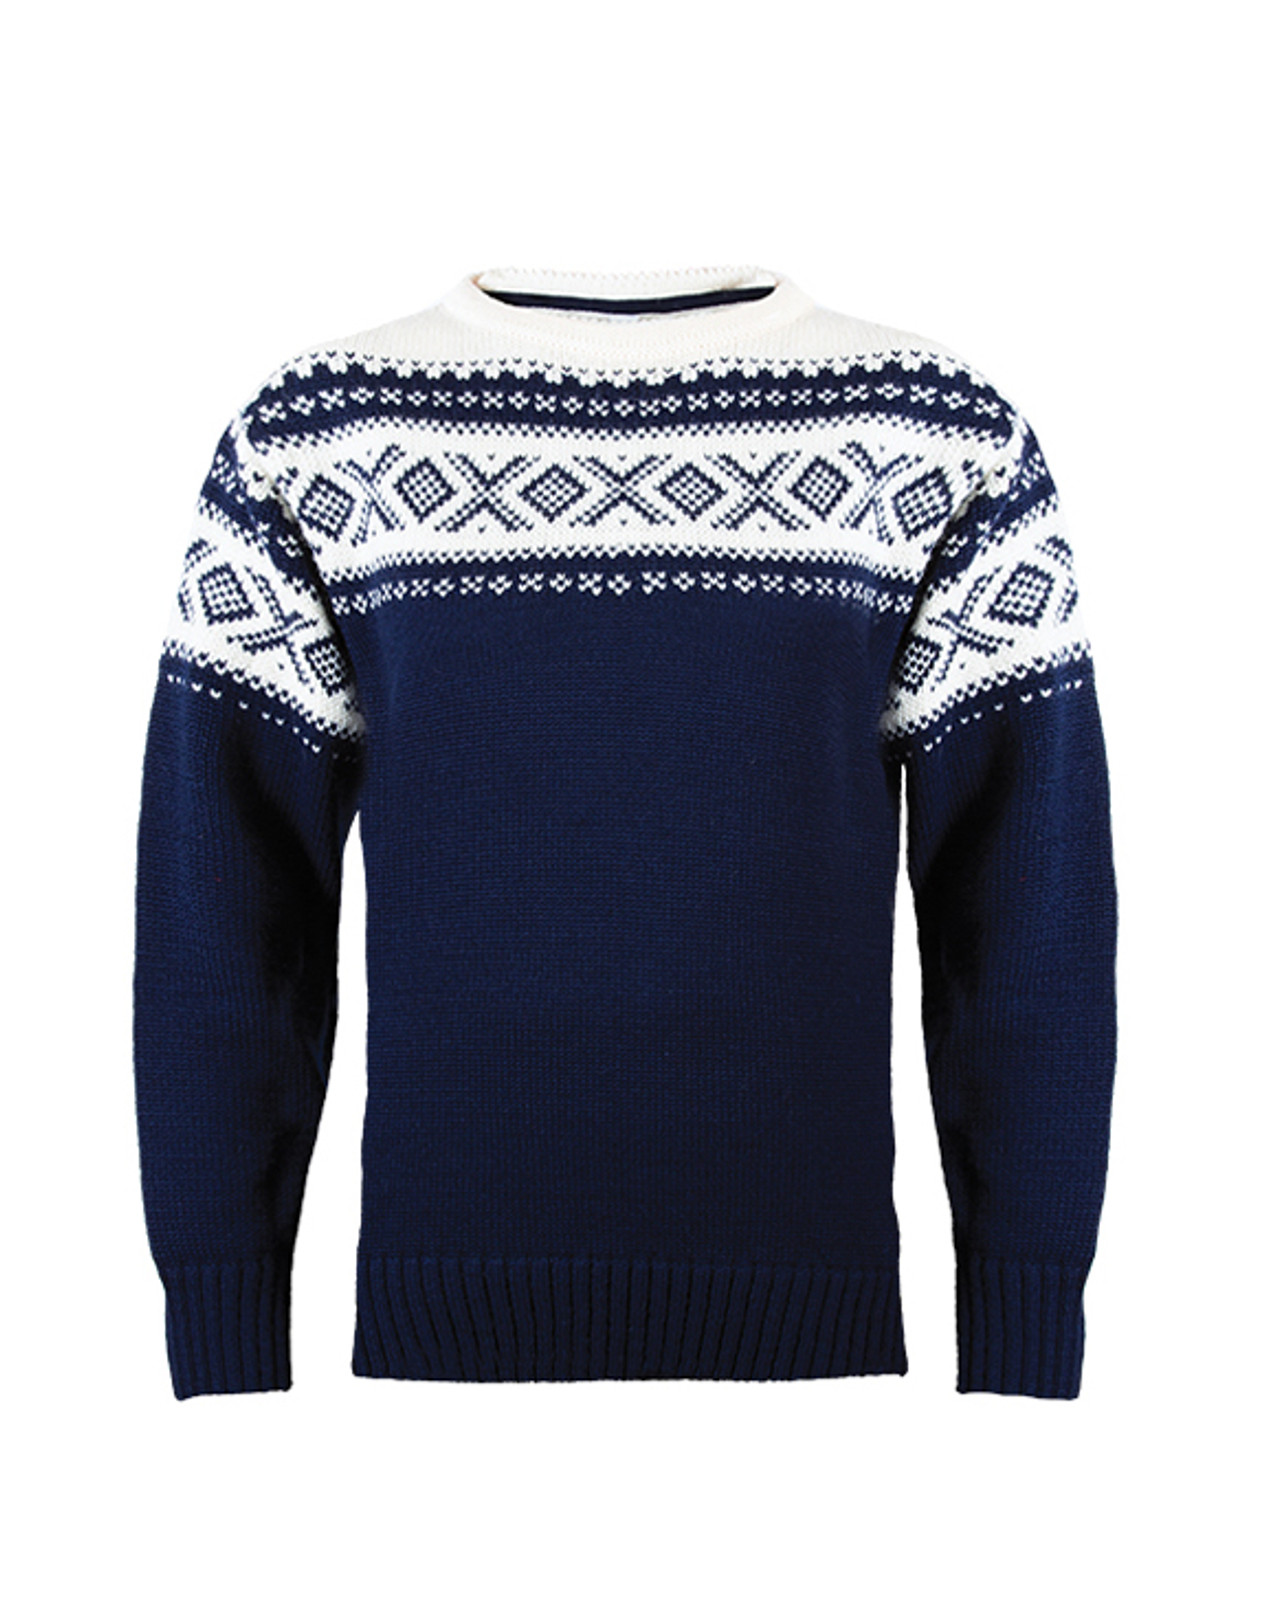 Dale of Norway, Cortina 1956 sweater, Unisex, in Navy/Off White, 92521-C